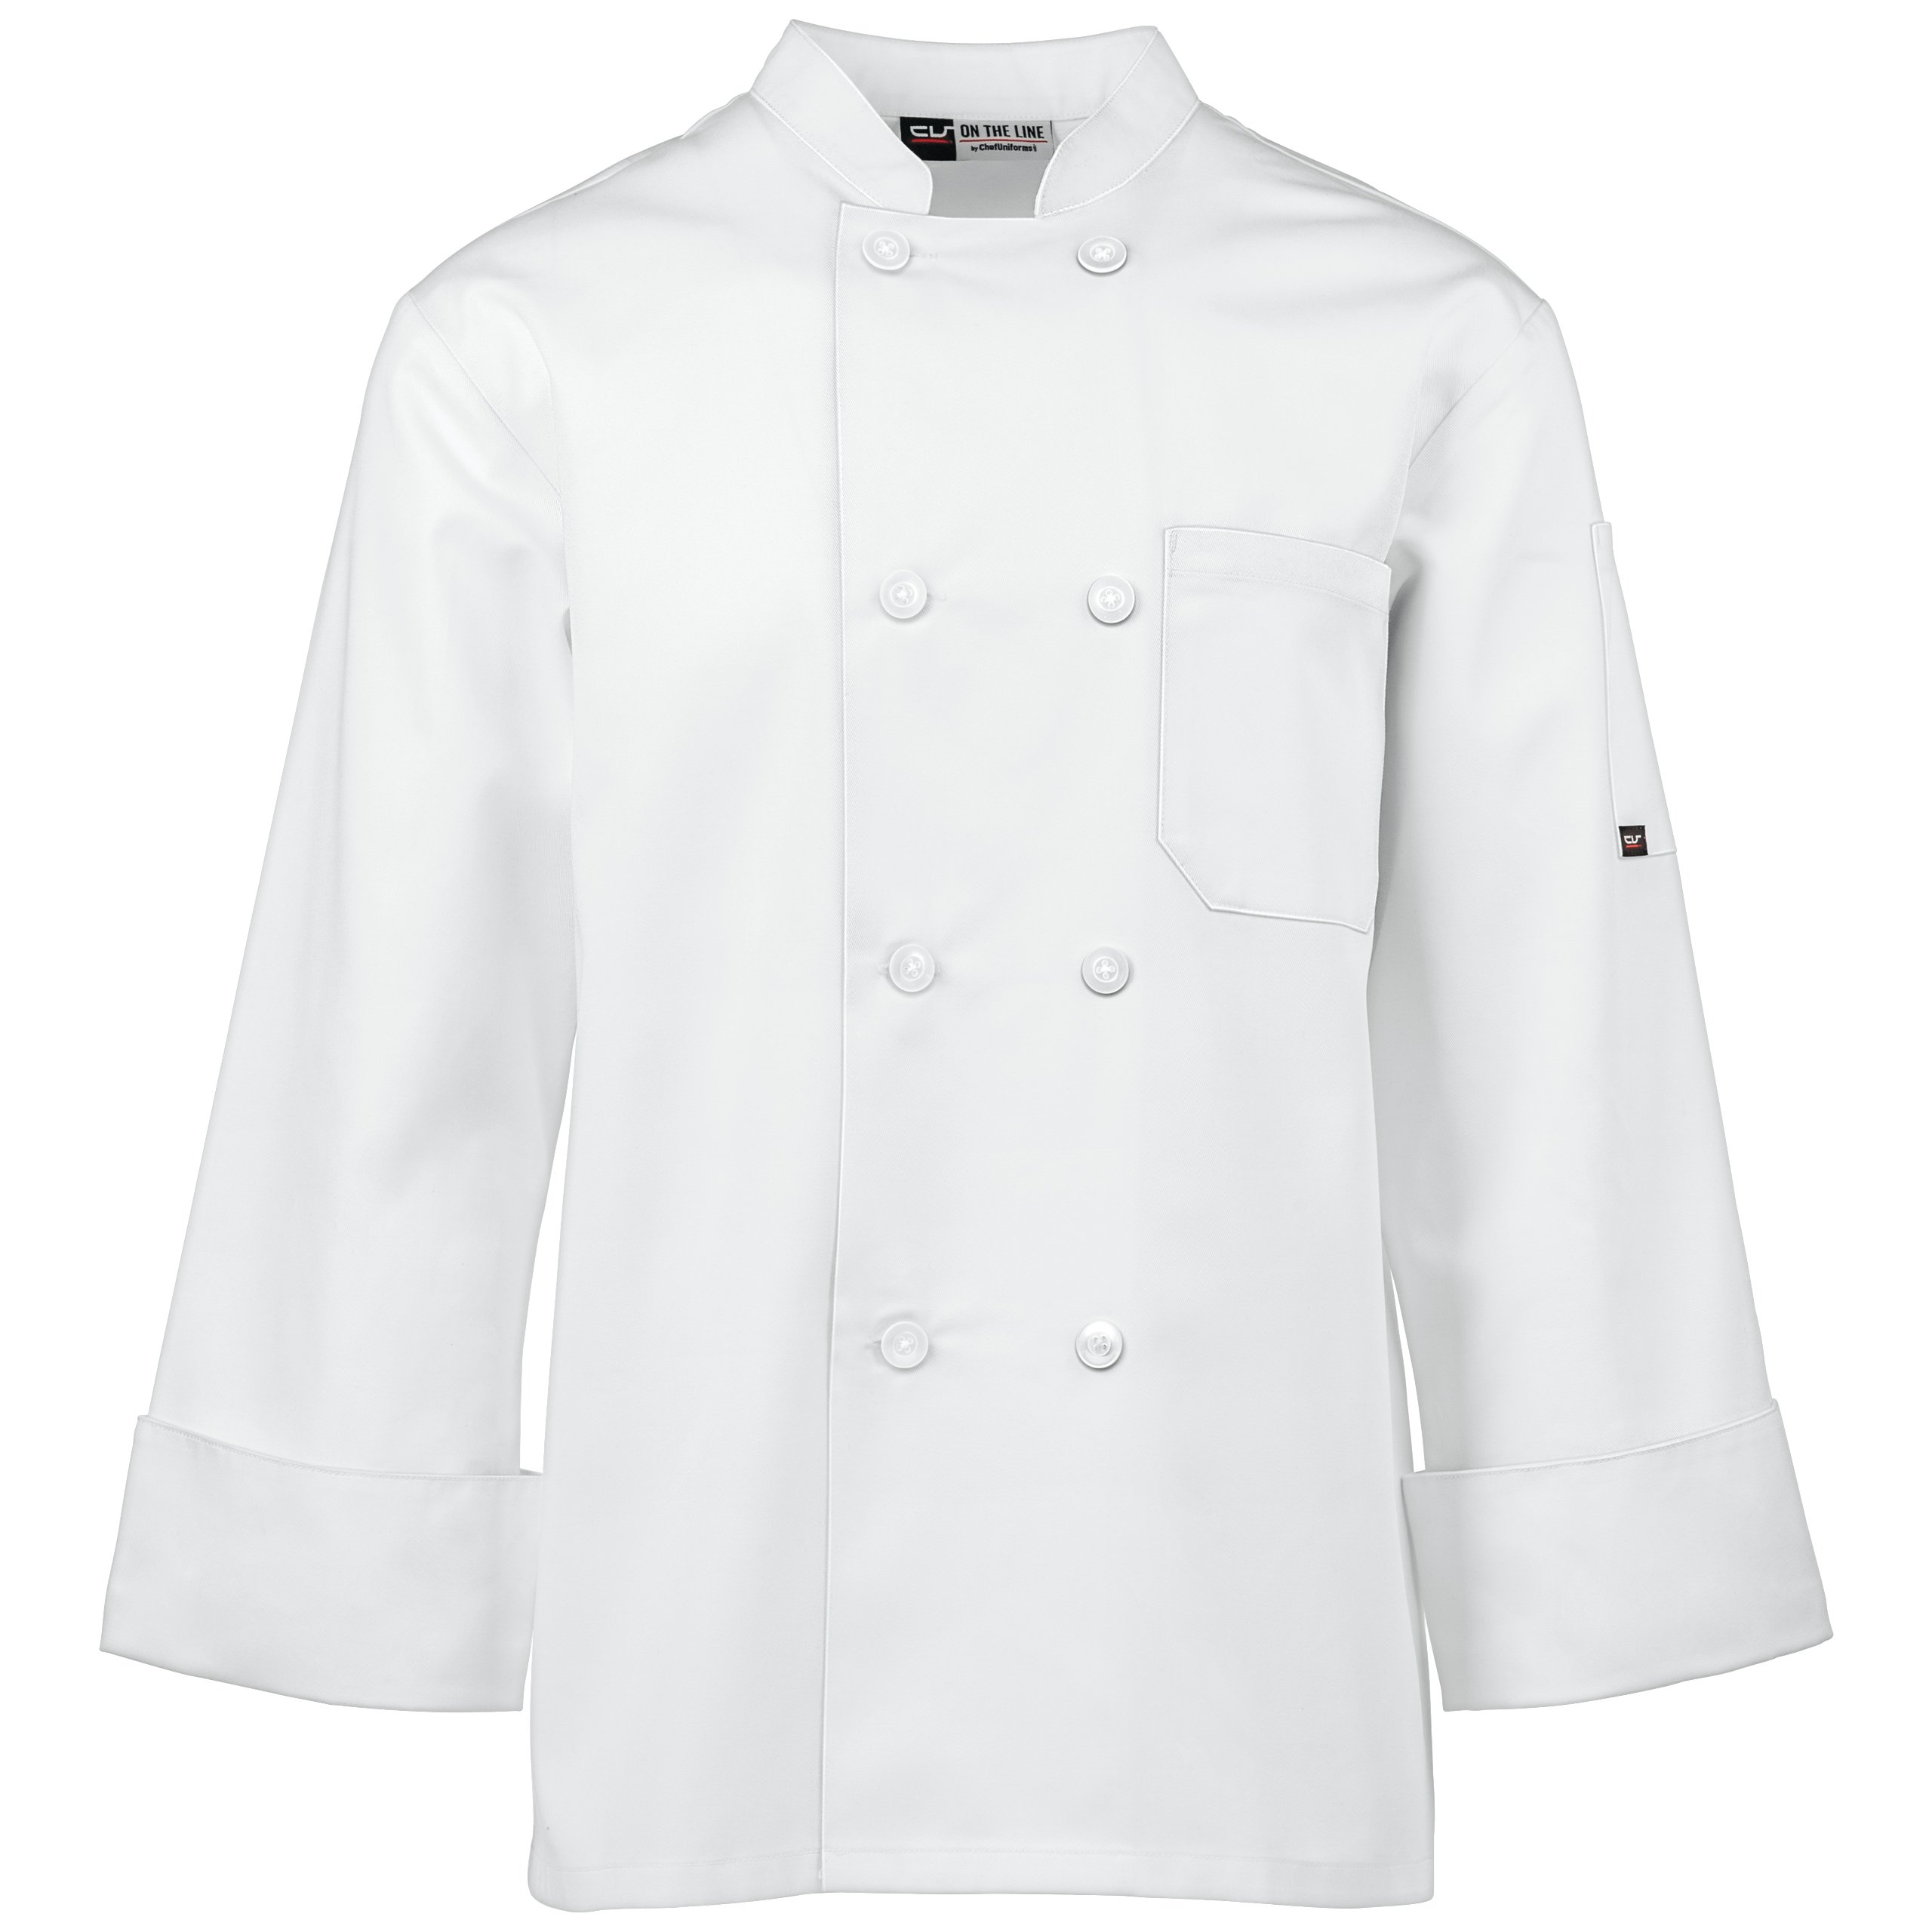 Unisex Long Sleeve Chef Coat/Double Breasted/Plastic Button Reversible Front Closure (S-2X, 2 Colors) (White, Medium) by On The Line (Image #2)